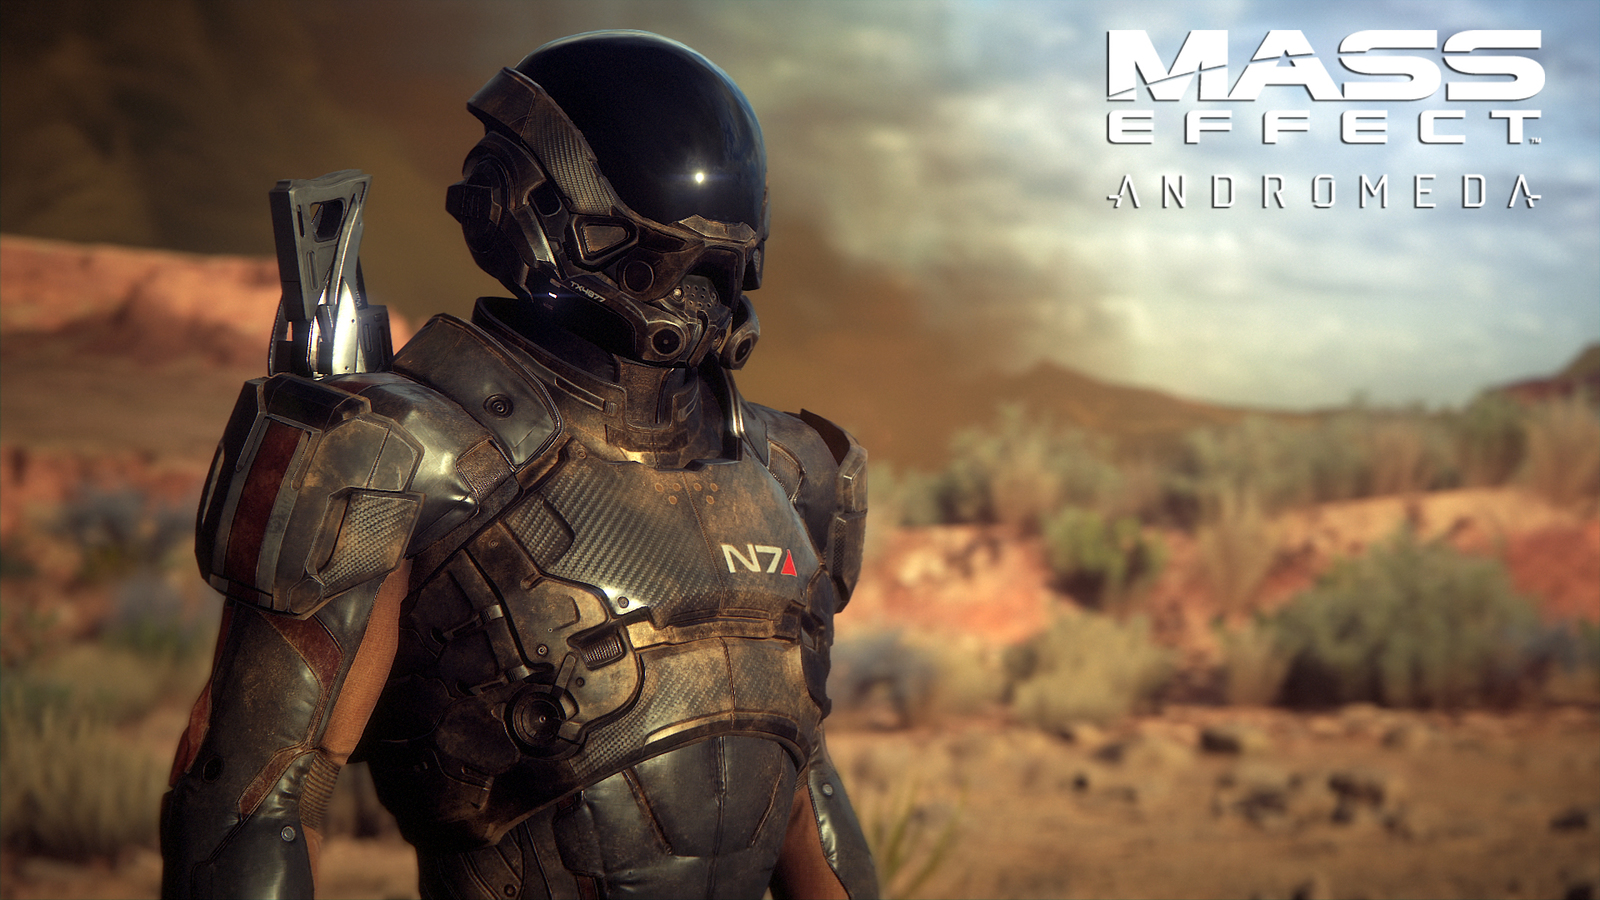 Mass Effect Andromeda for PC Games image